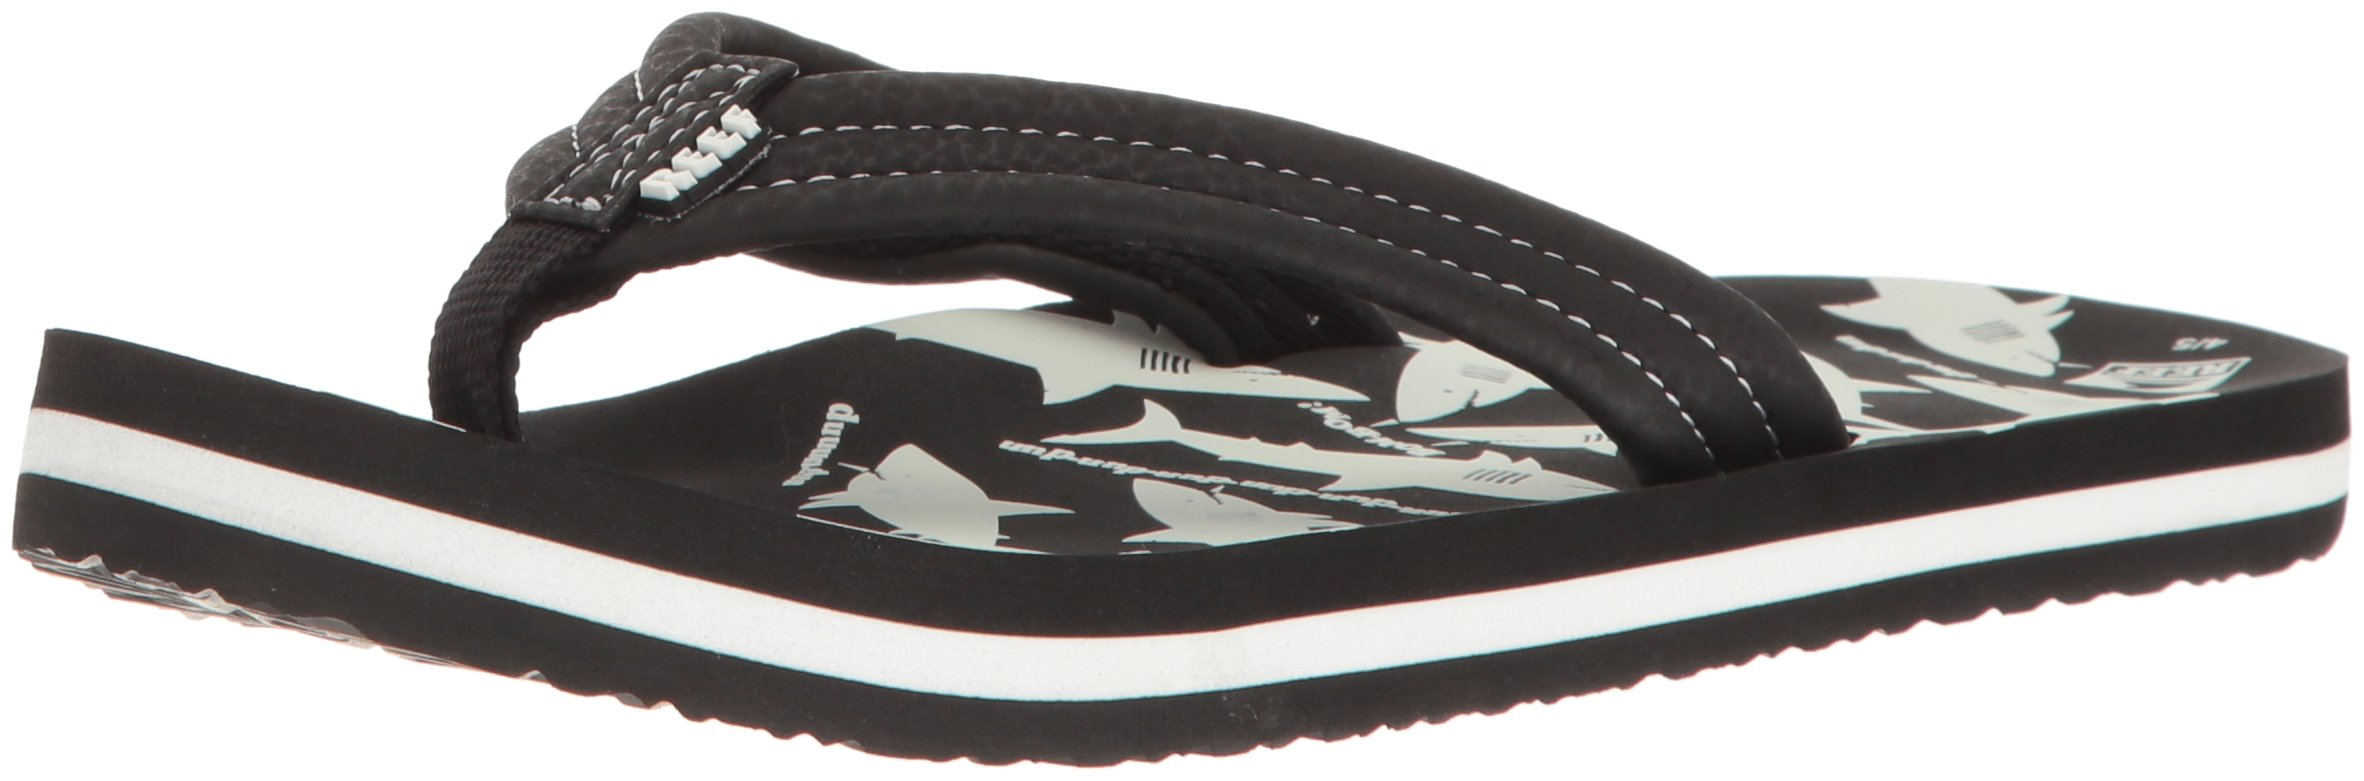 Reef Boys' AHI Glow - K Sandal, Black/White, 5/6 M US Toddler